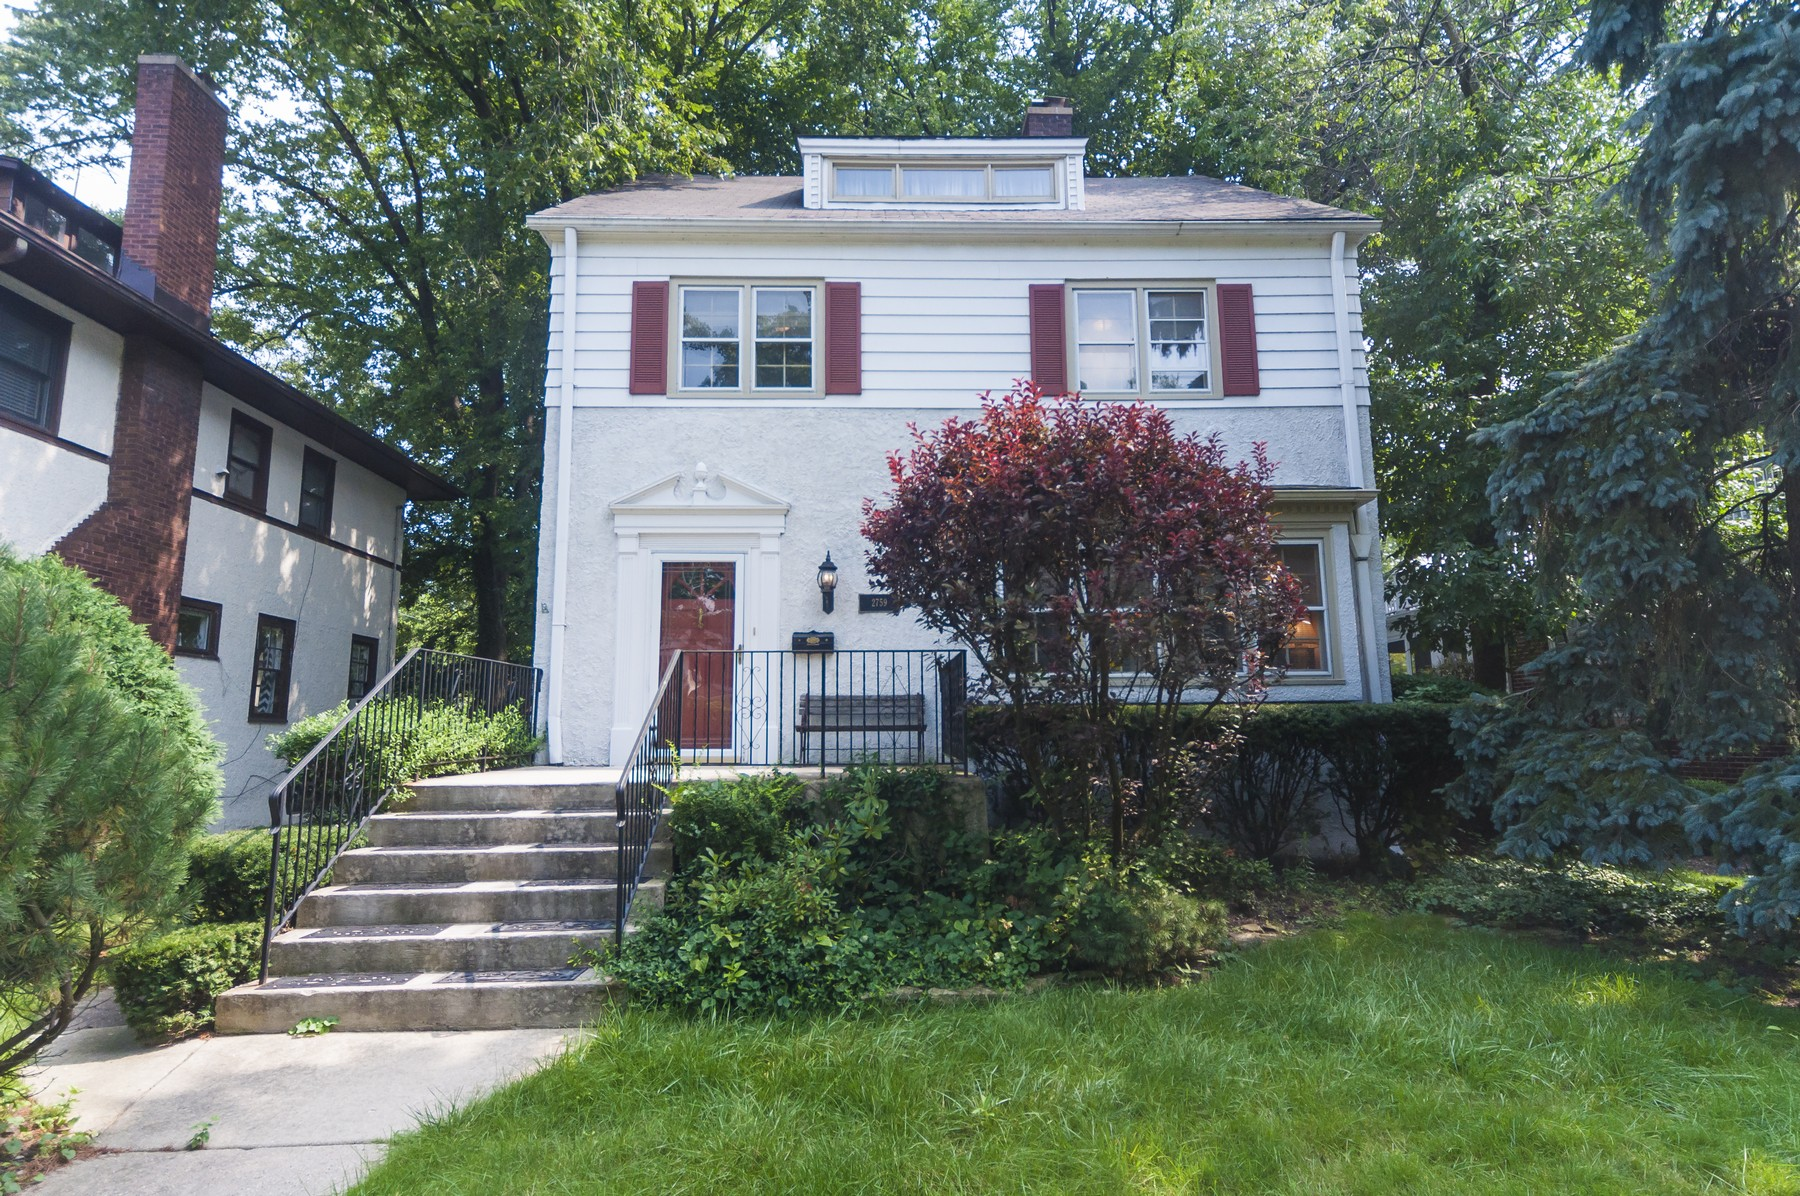 Property For Sale at Lovely Five Bedroom Home In Premier Evanston Location